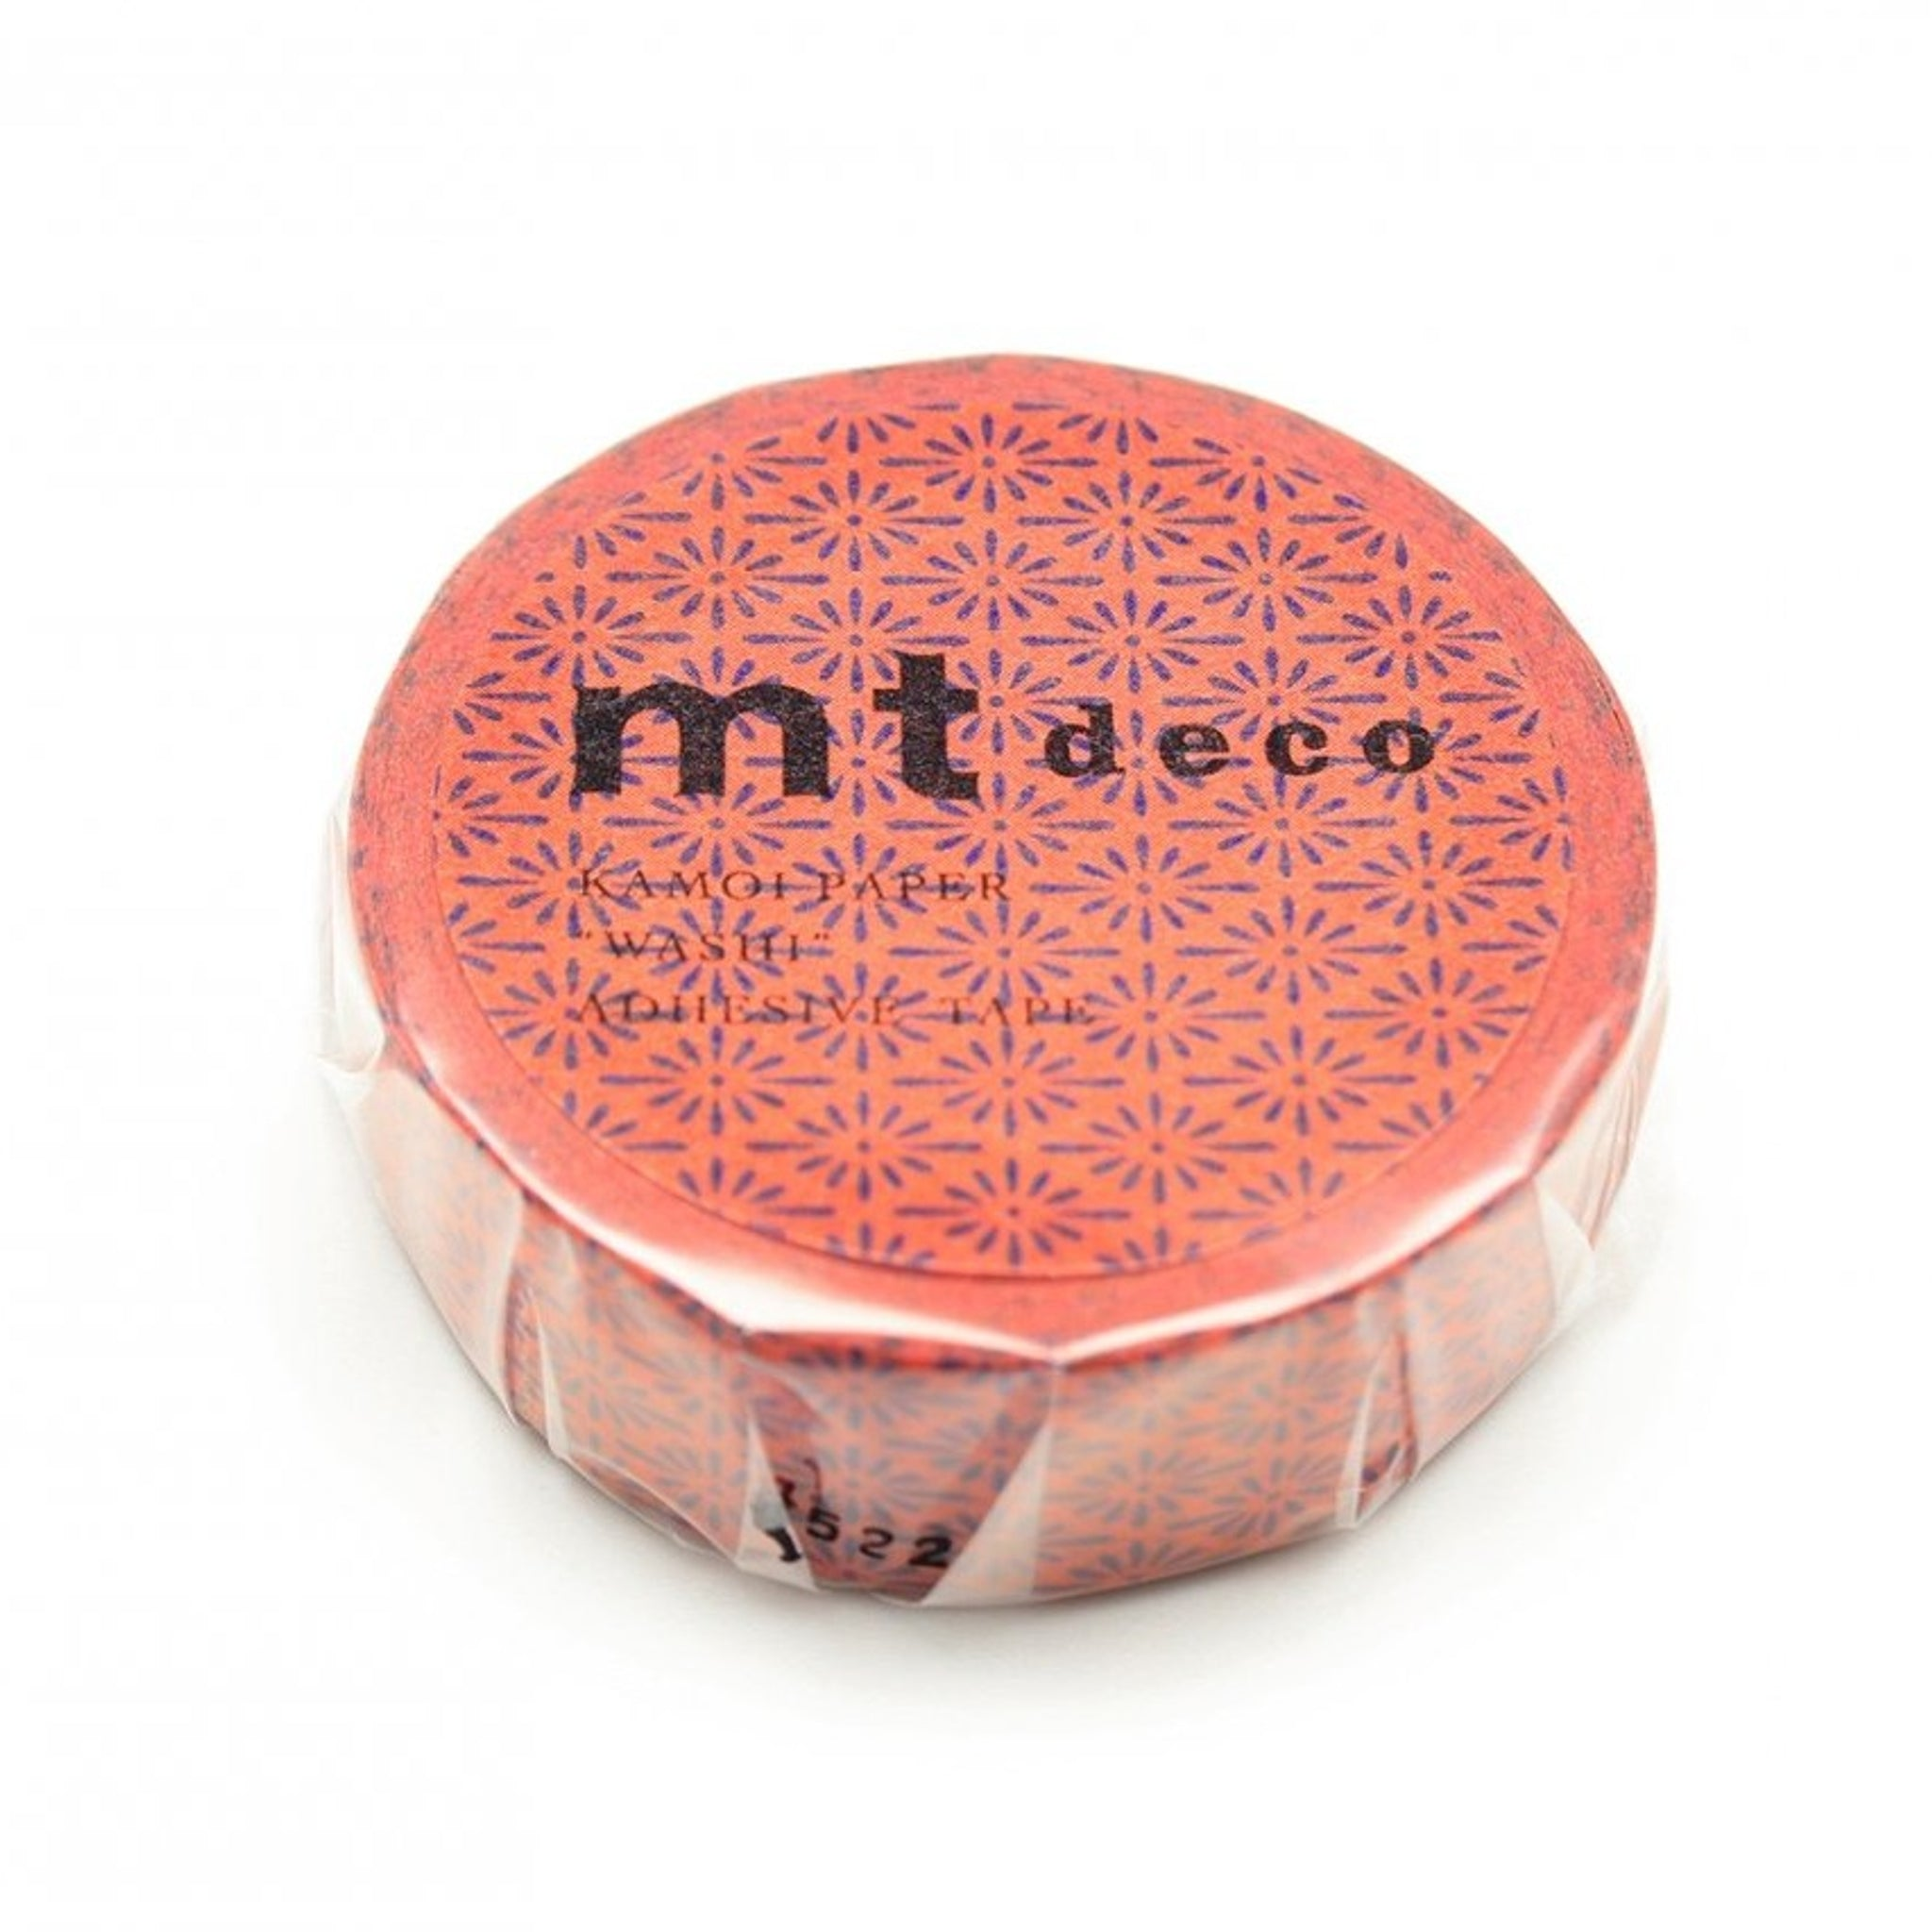 MT Deco Washi Tape Hanabishi Kakishibu